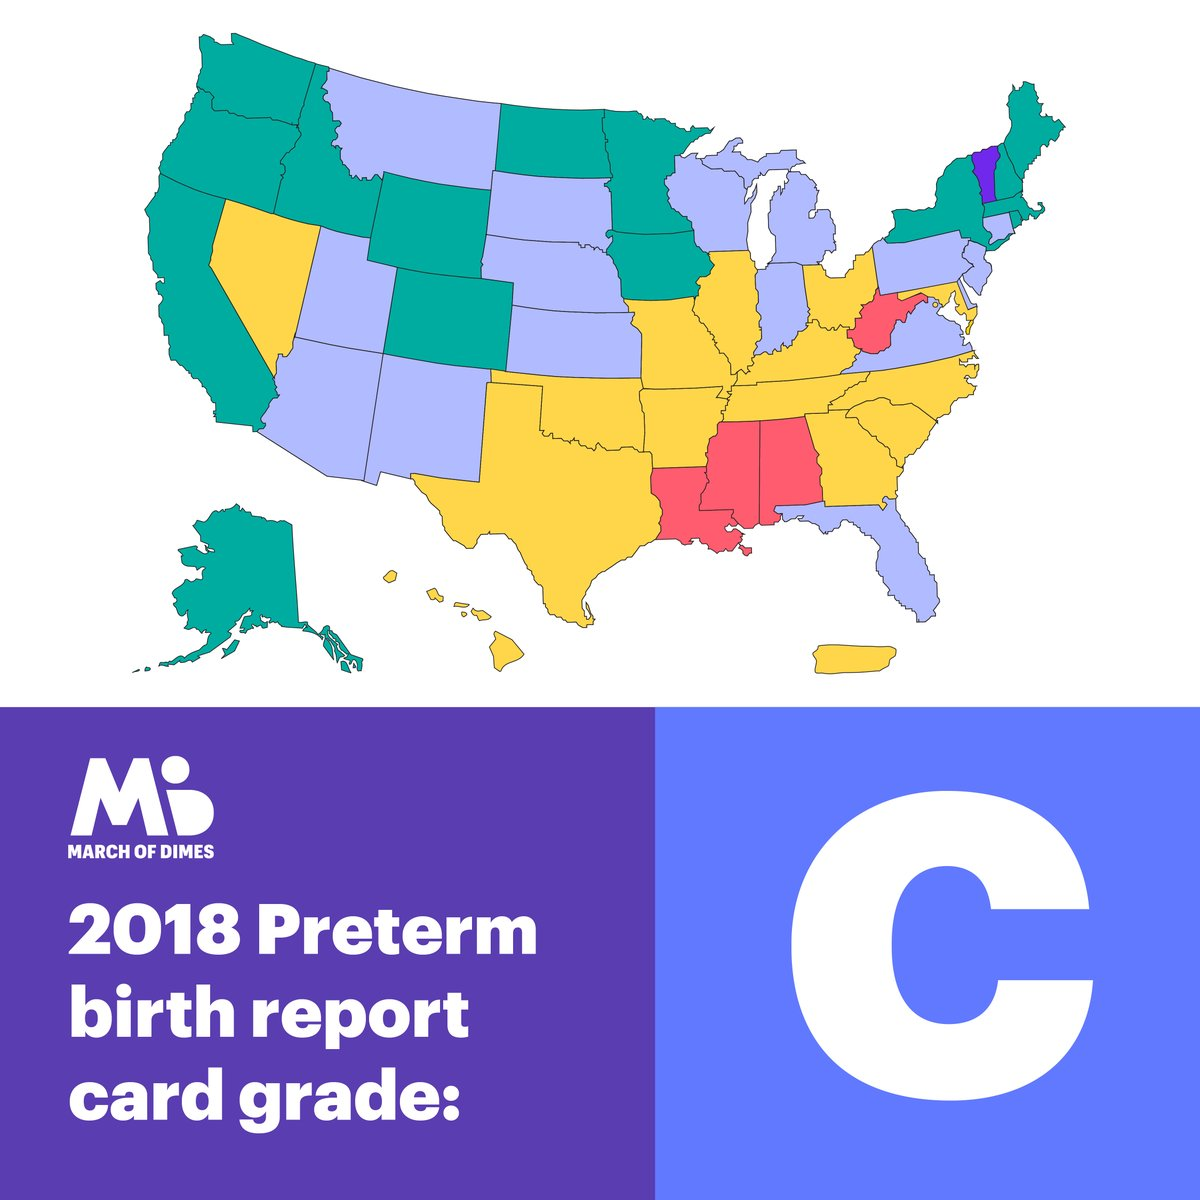 Premature Birth Report Cards grades are not so good this year